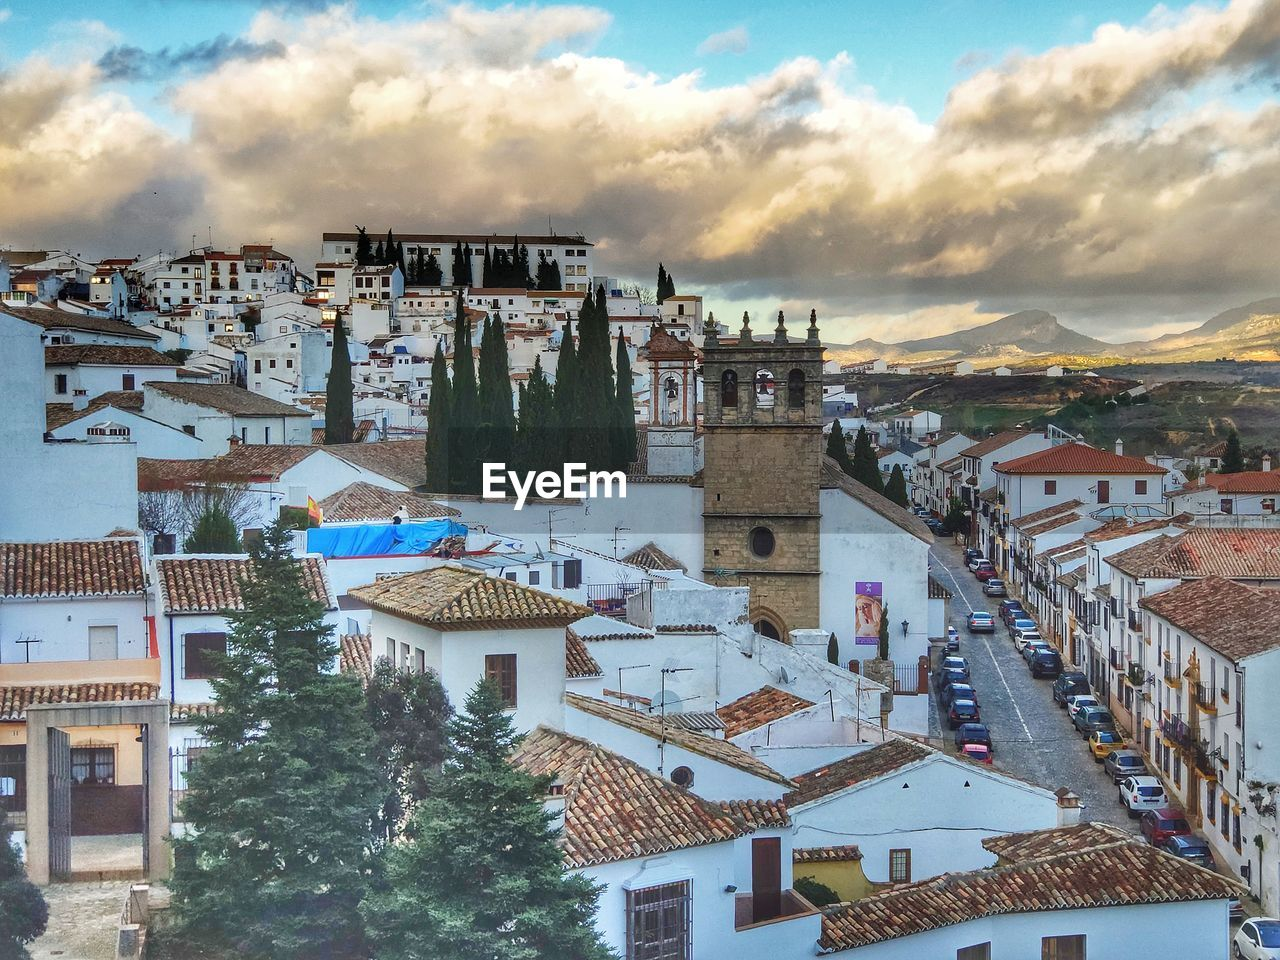 architecture, building exterior, built structure, building, cloud - sky, sky, residential district, city, town, nature, roof, high angle view, house, townscape, crowd, crowded, community, mountain, day, outdoors, cityscape, settlement